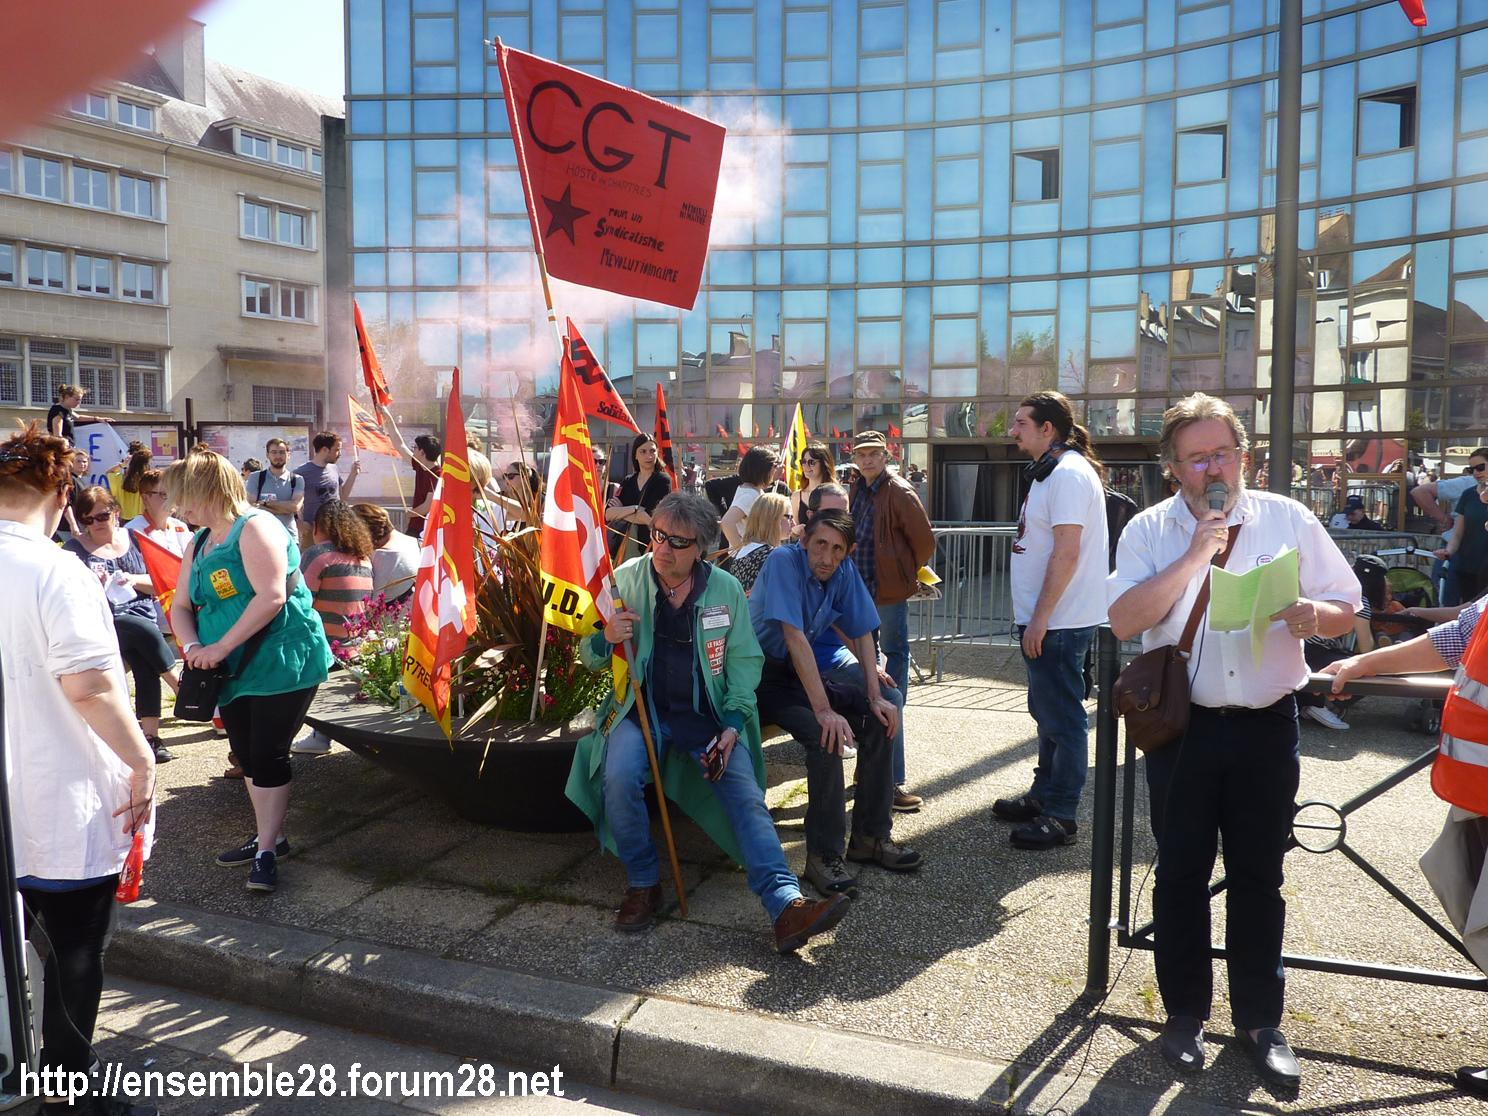 19-04-2018 Chartres Manifestation Interprofessionnelle CGT Solidaires SNES-FSU n°17